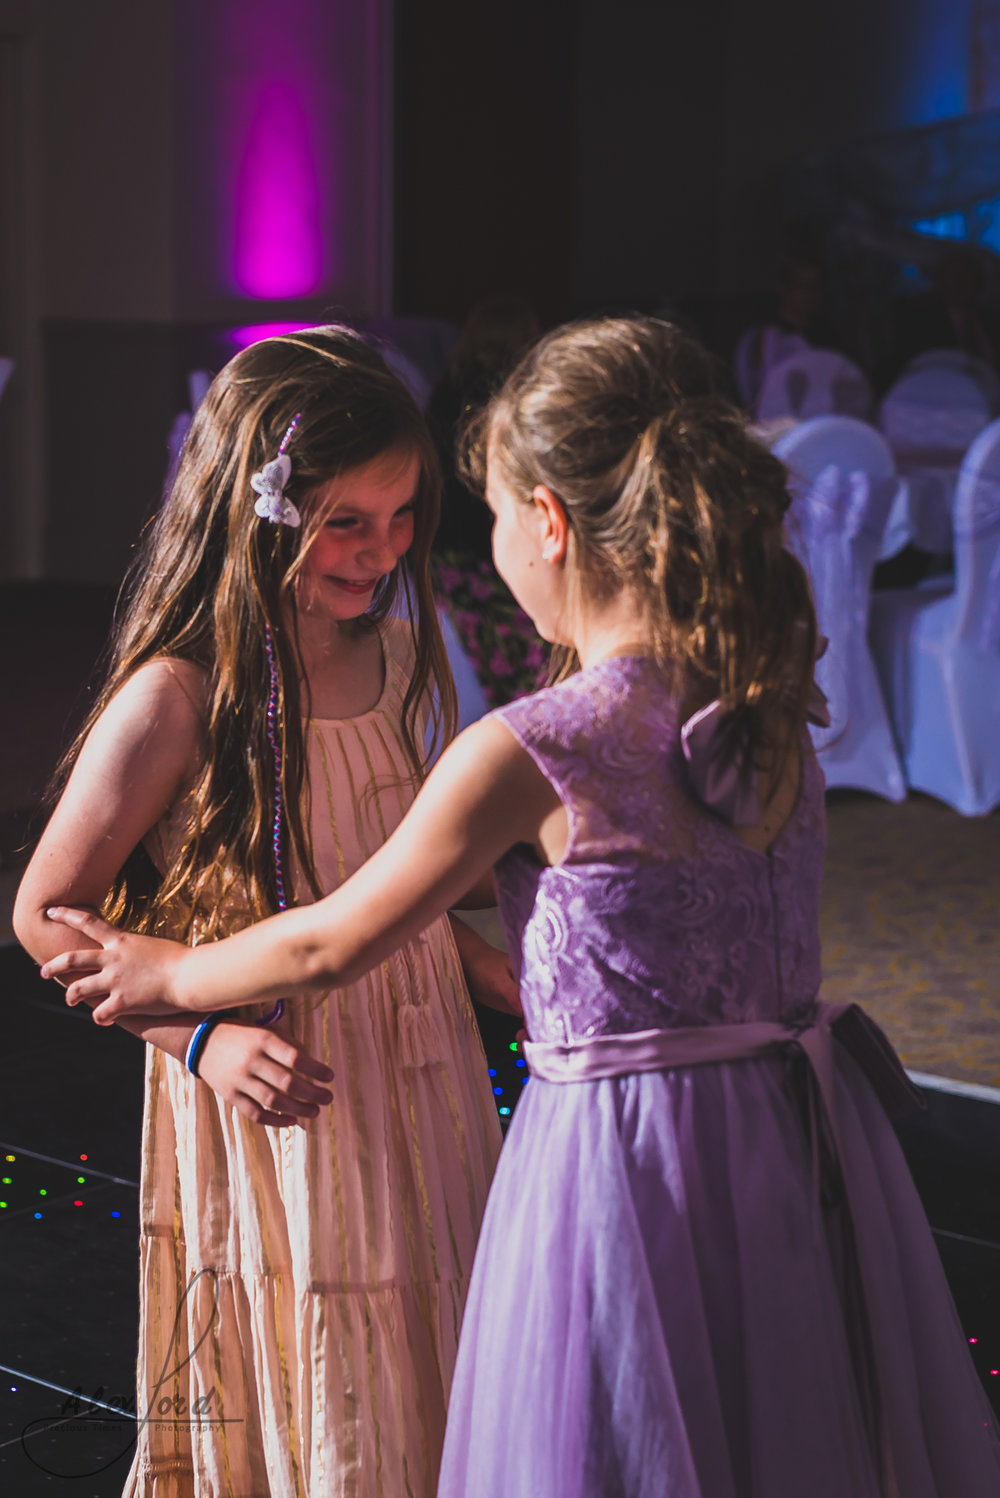 two young girl wedding guests hold hands and dance on the dance floor